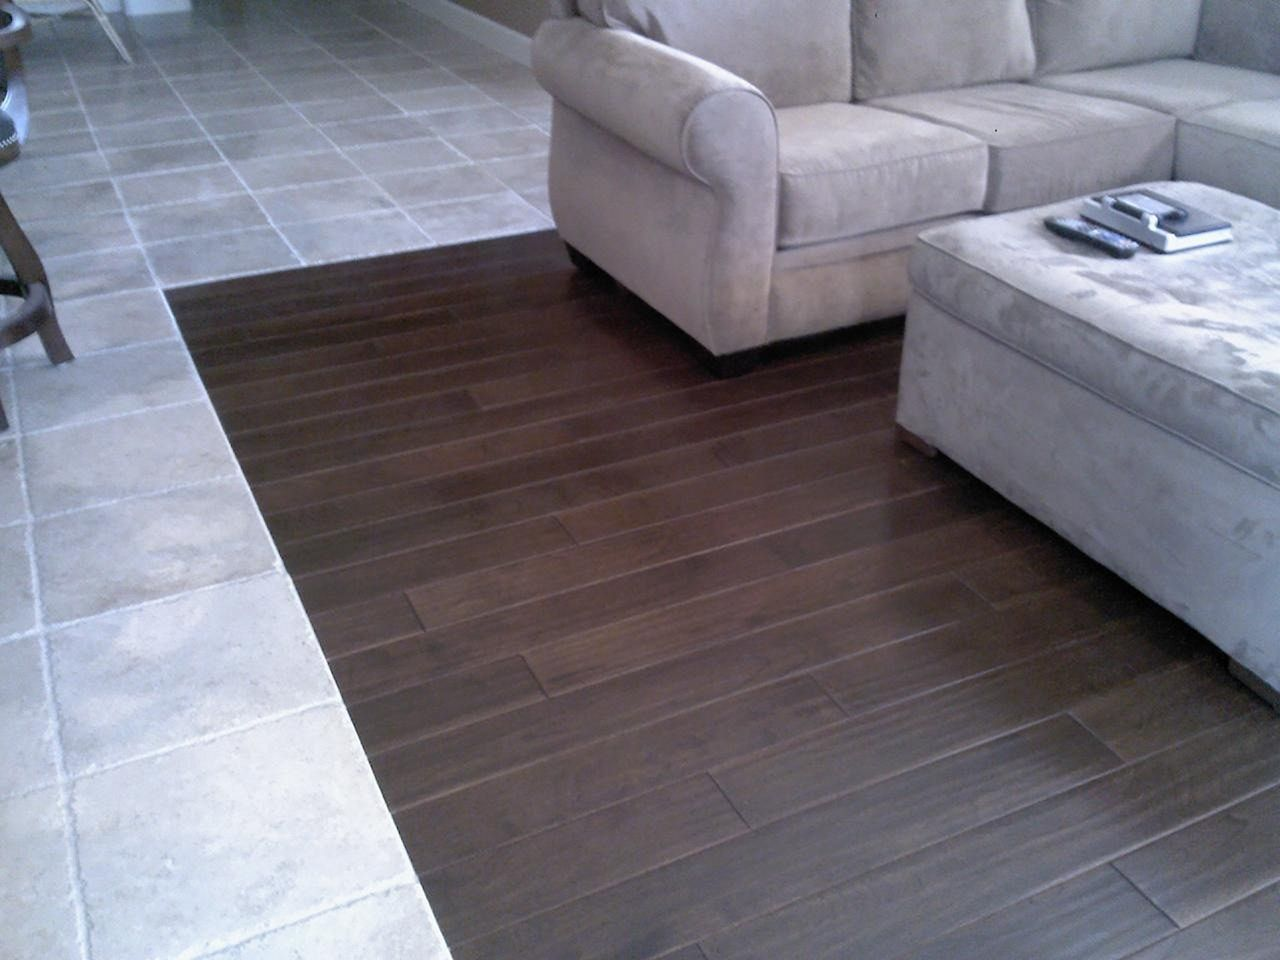 30 Awesome Wood Floor With Tiles Border Design Ideas To